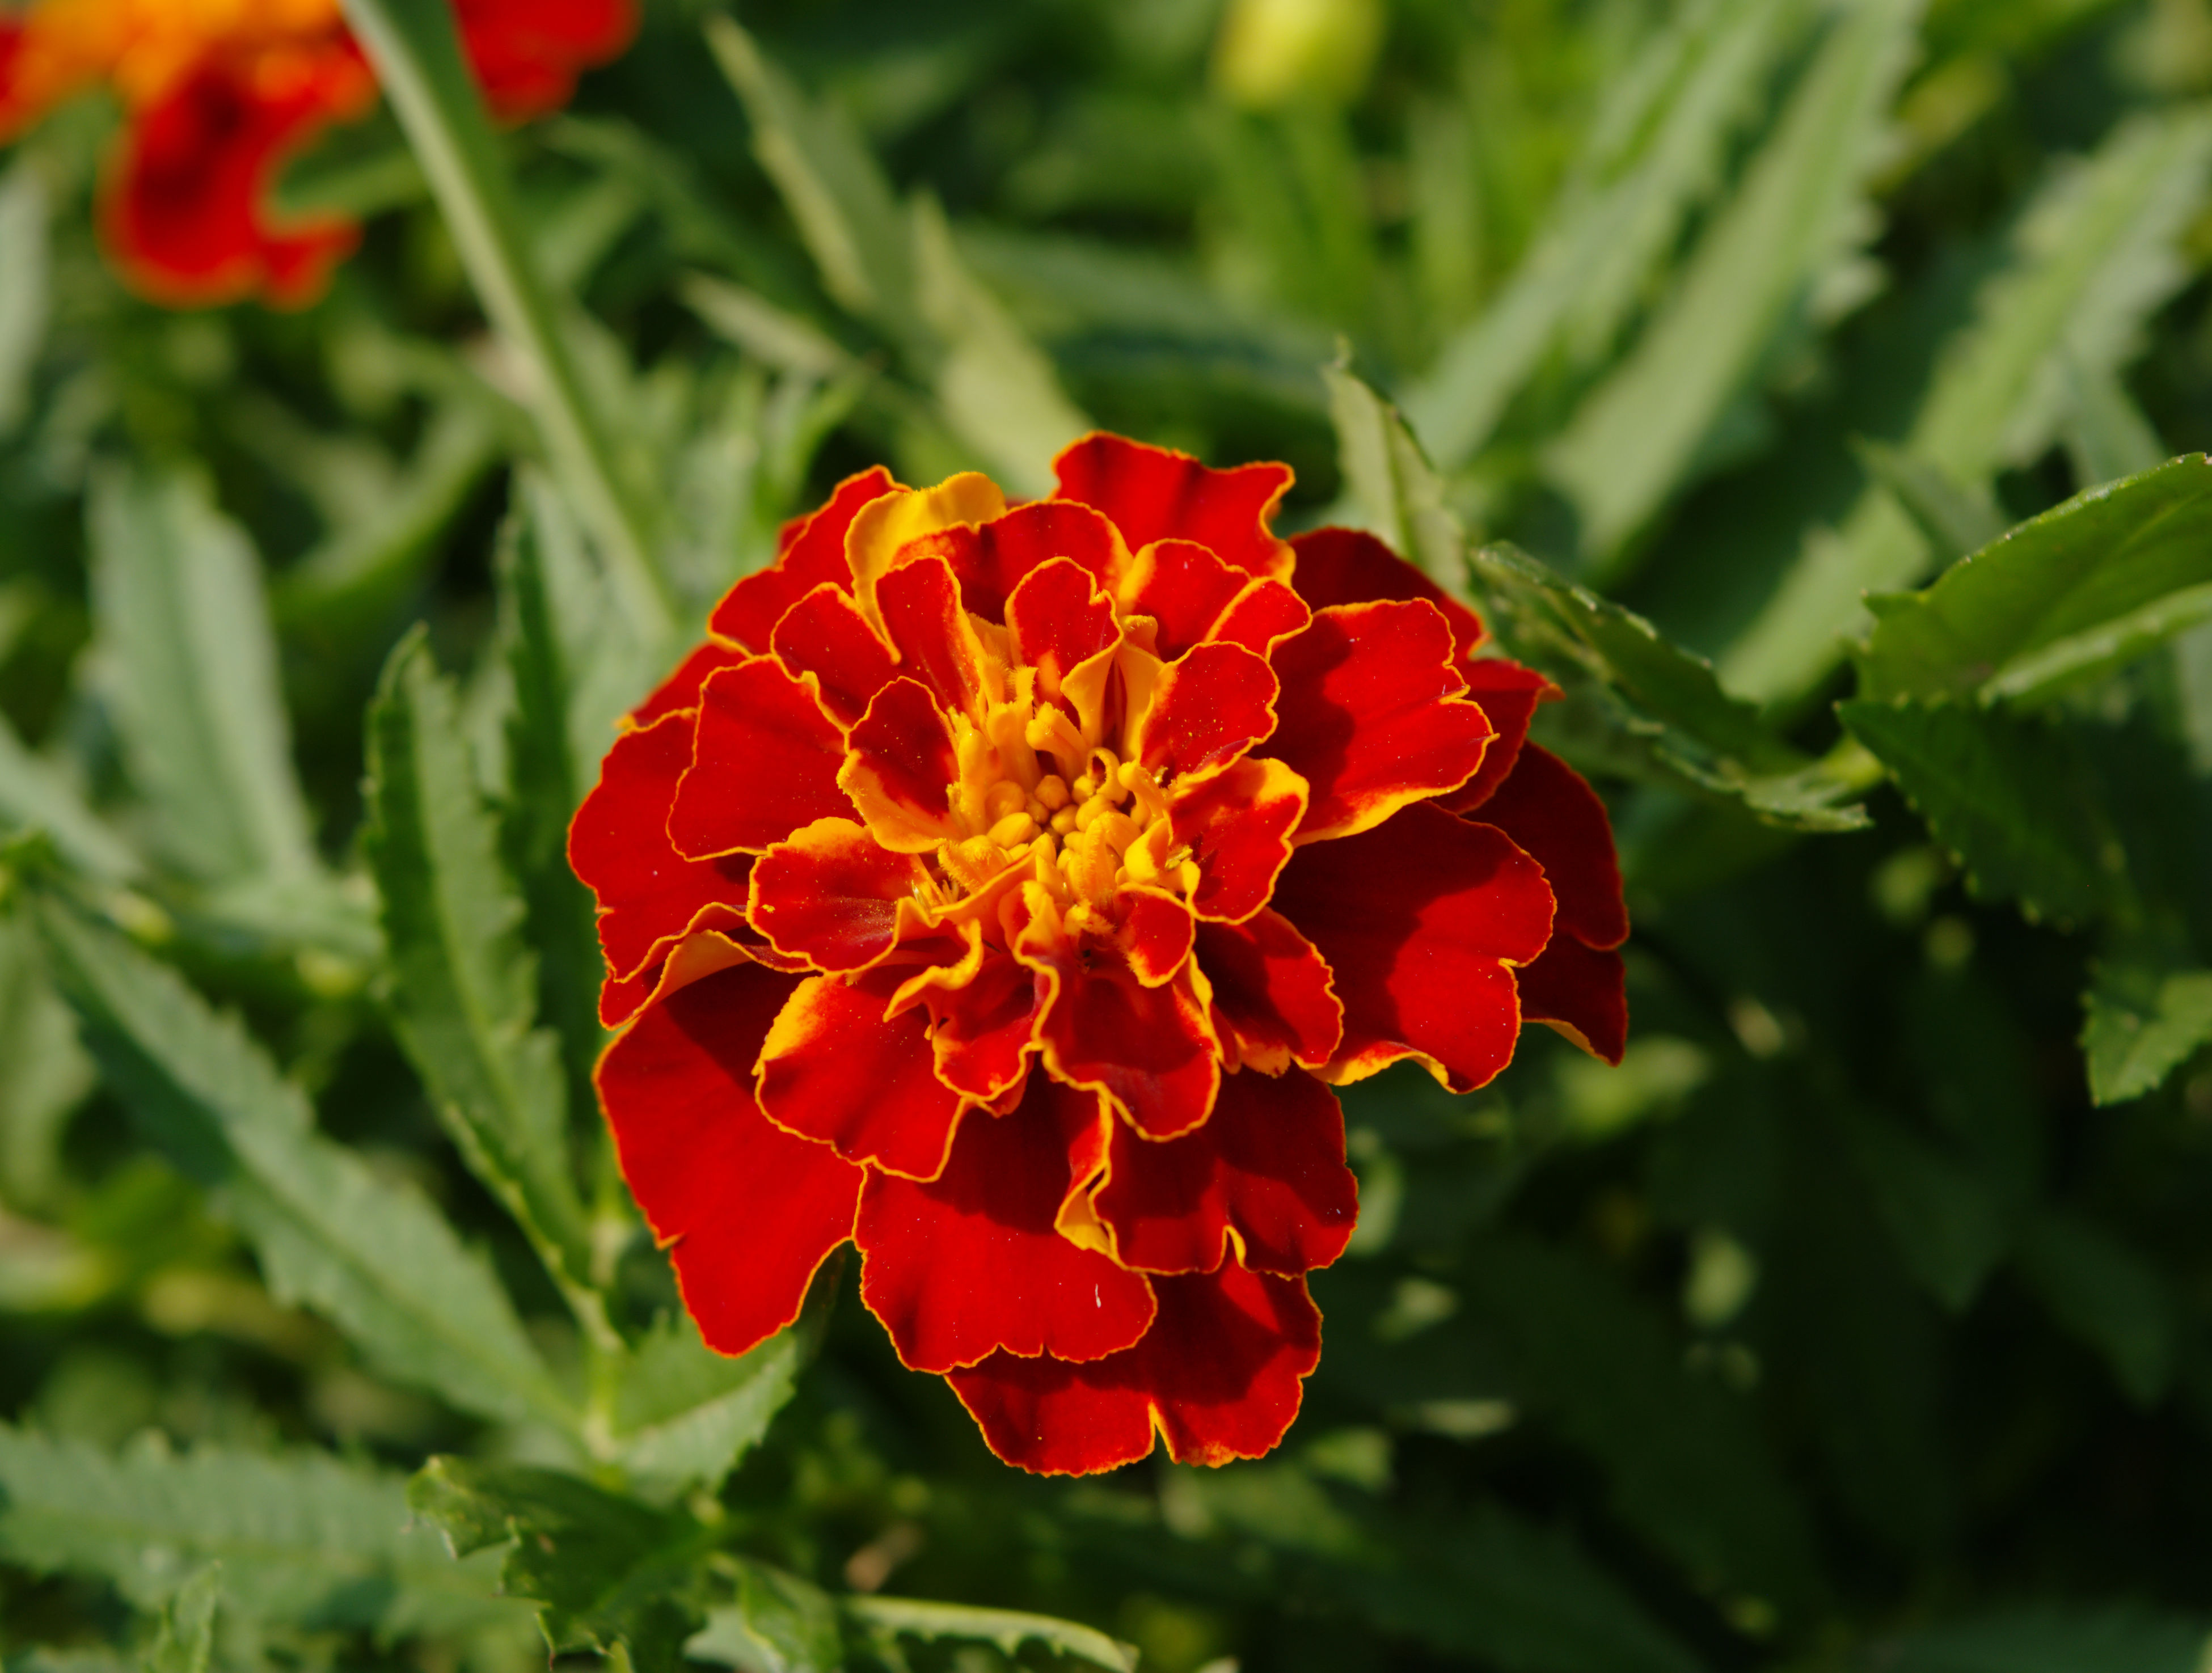 flower, nature, freshness, fragility, red, beauty in nature, growth, petal, blooming, flower head, plant, no people, close-up, outdoors, day